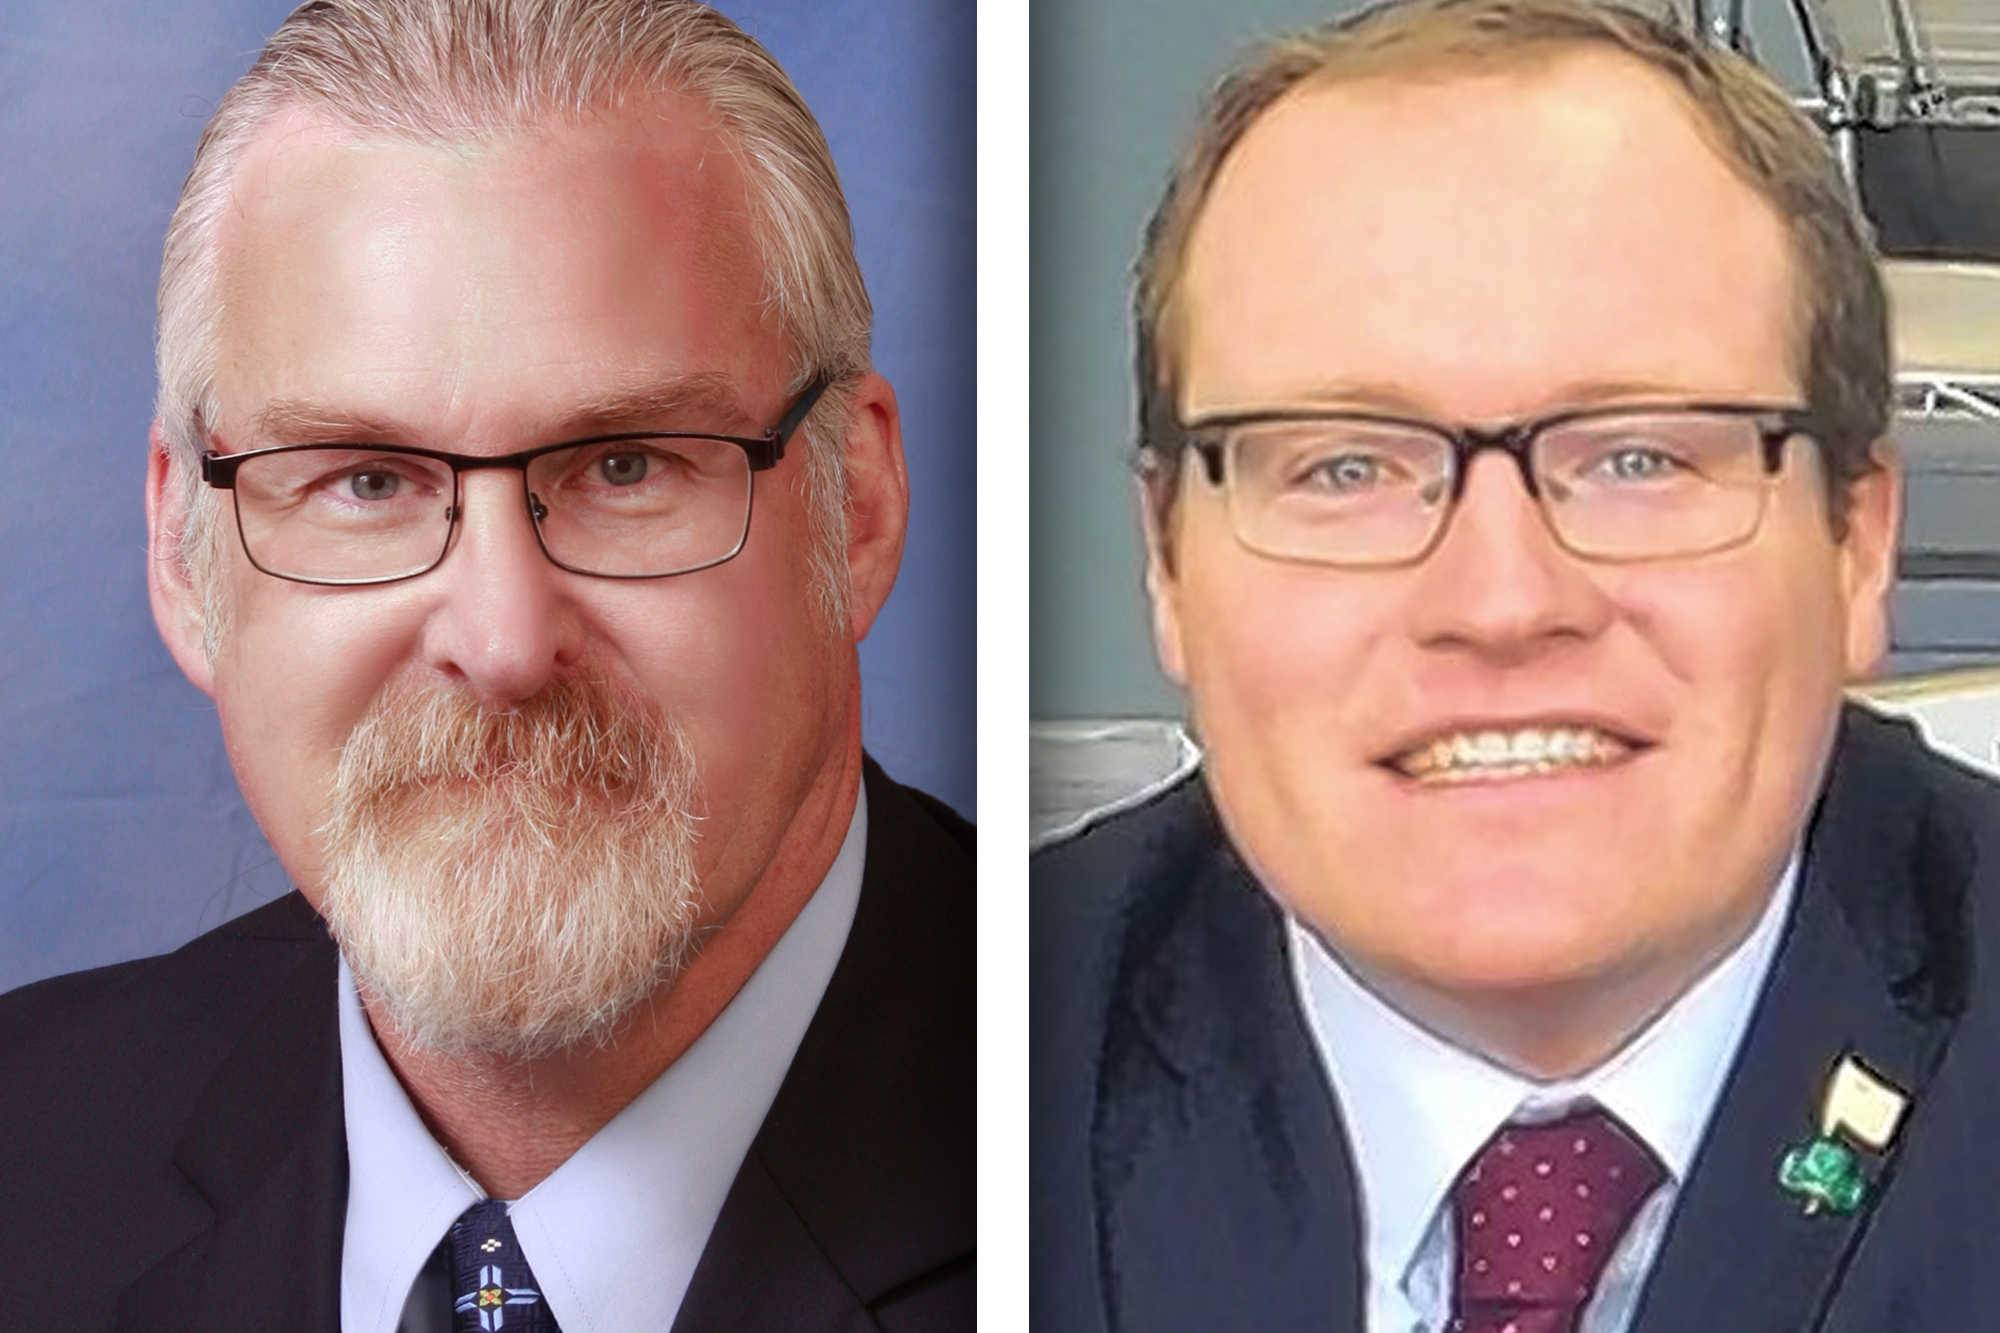 McHenry County state's attorney hopefuls differ on trial strategies